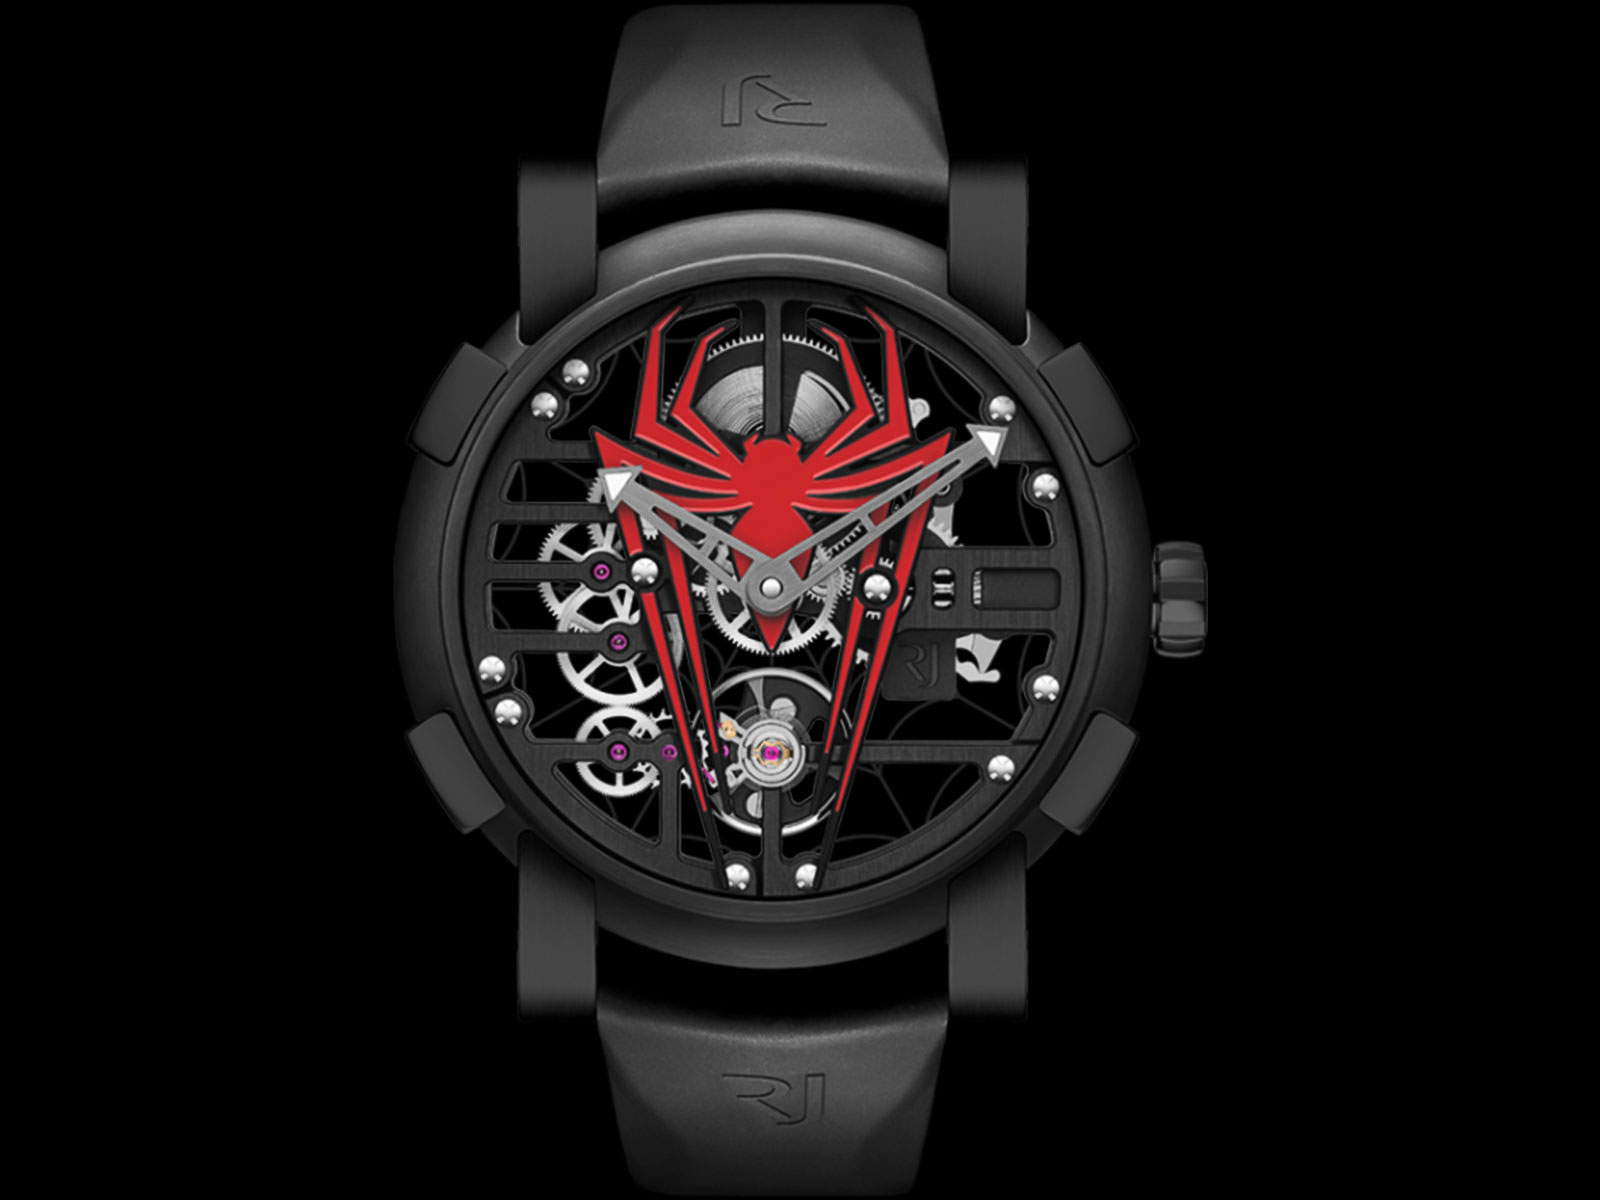 Romain-Jerome-Örümcek Adam-Limited-Edition-RJ-M-AU-030-07.jpg